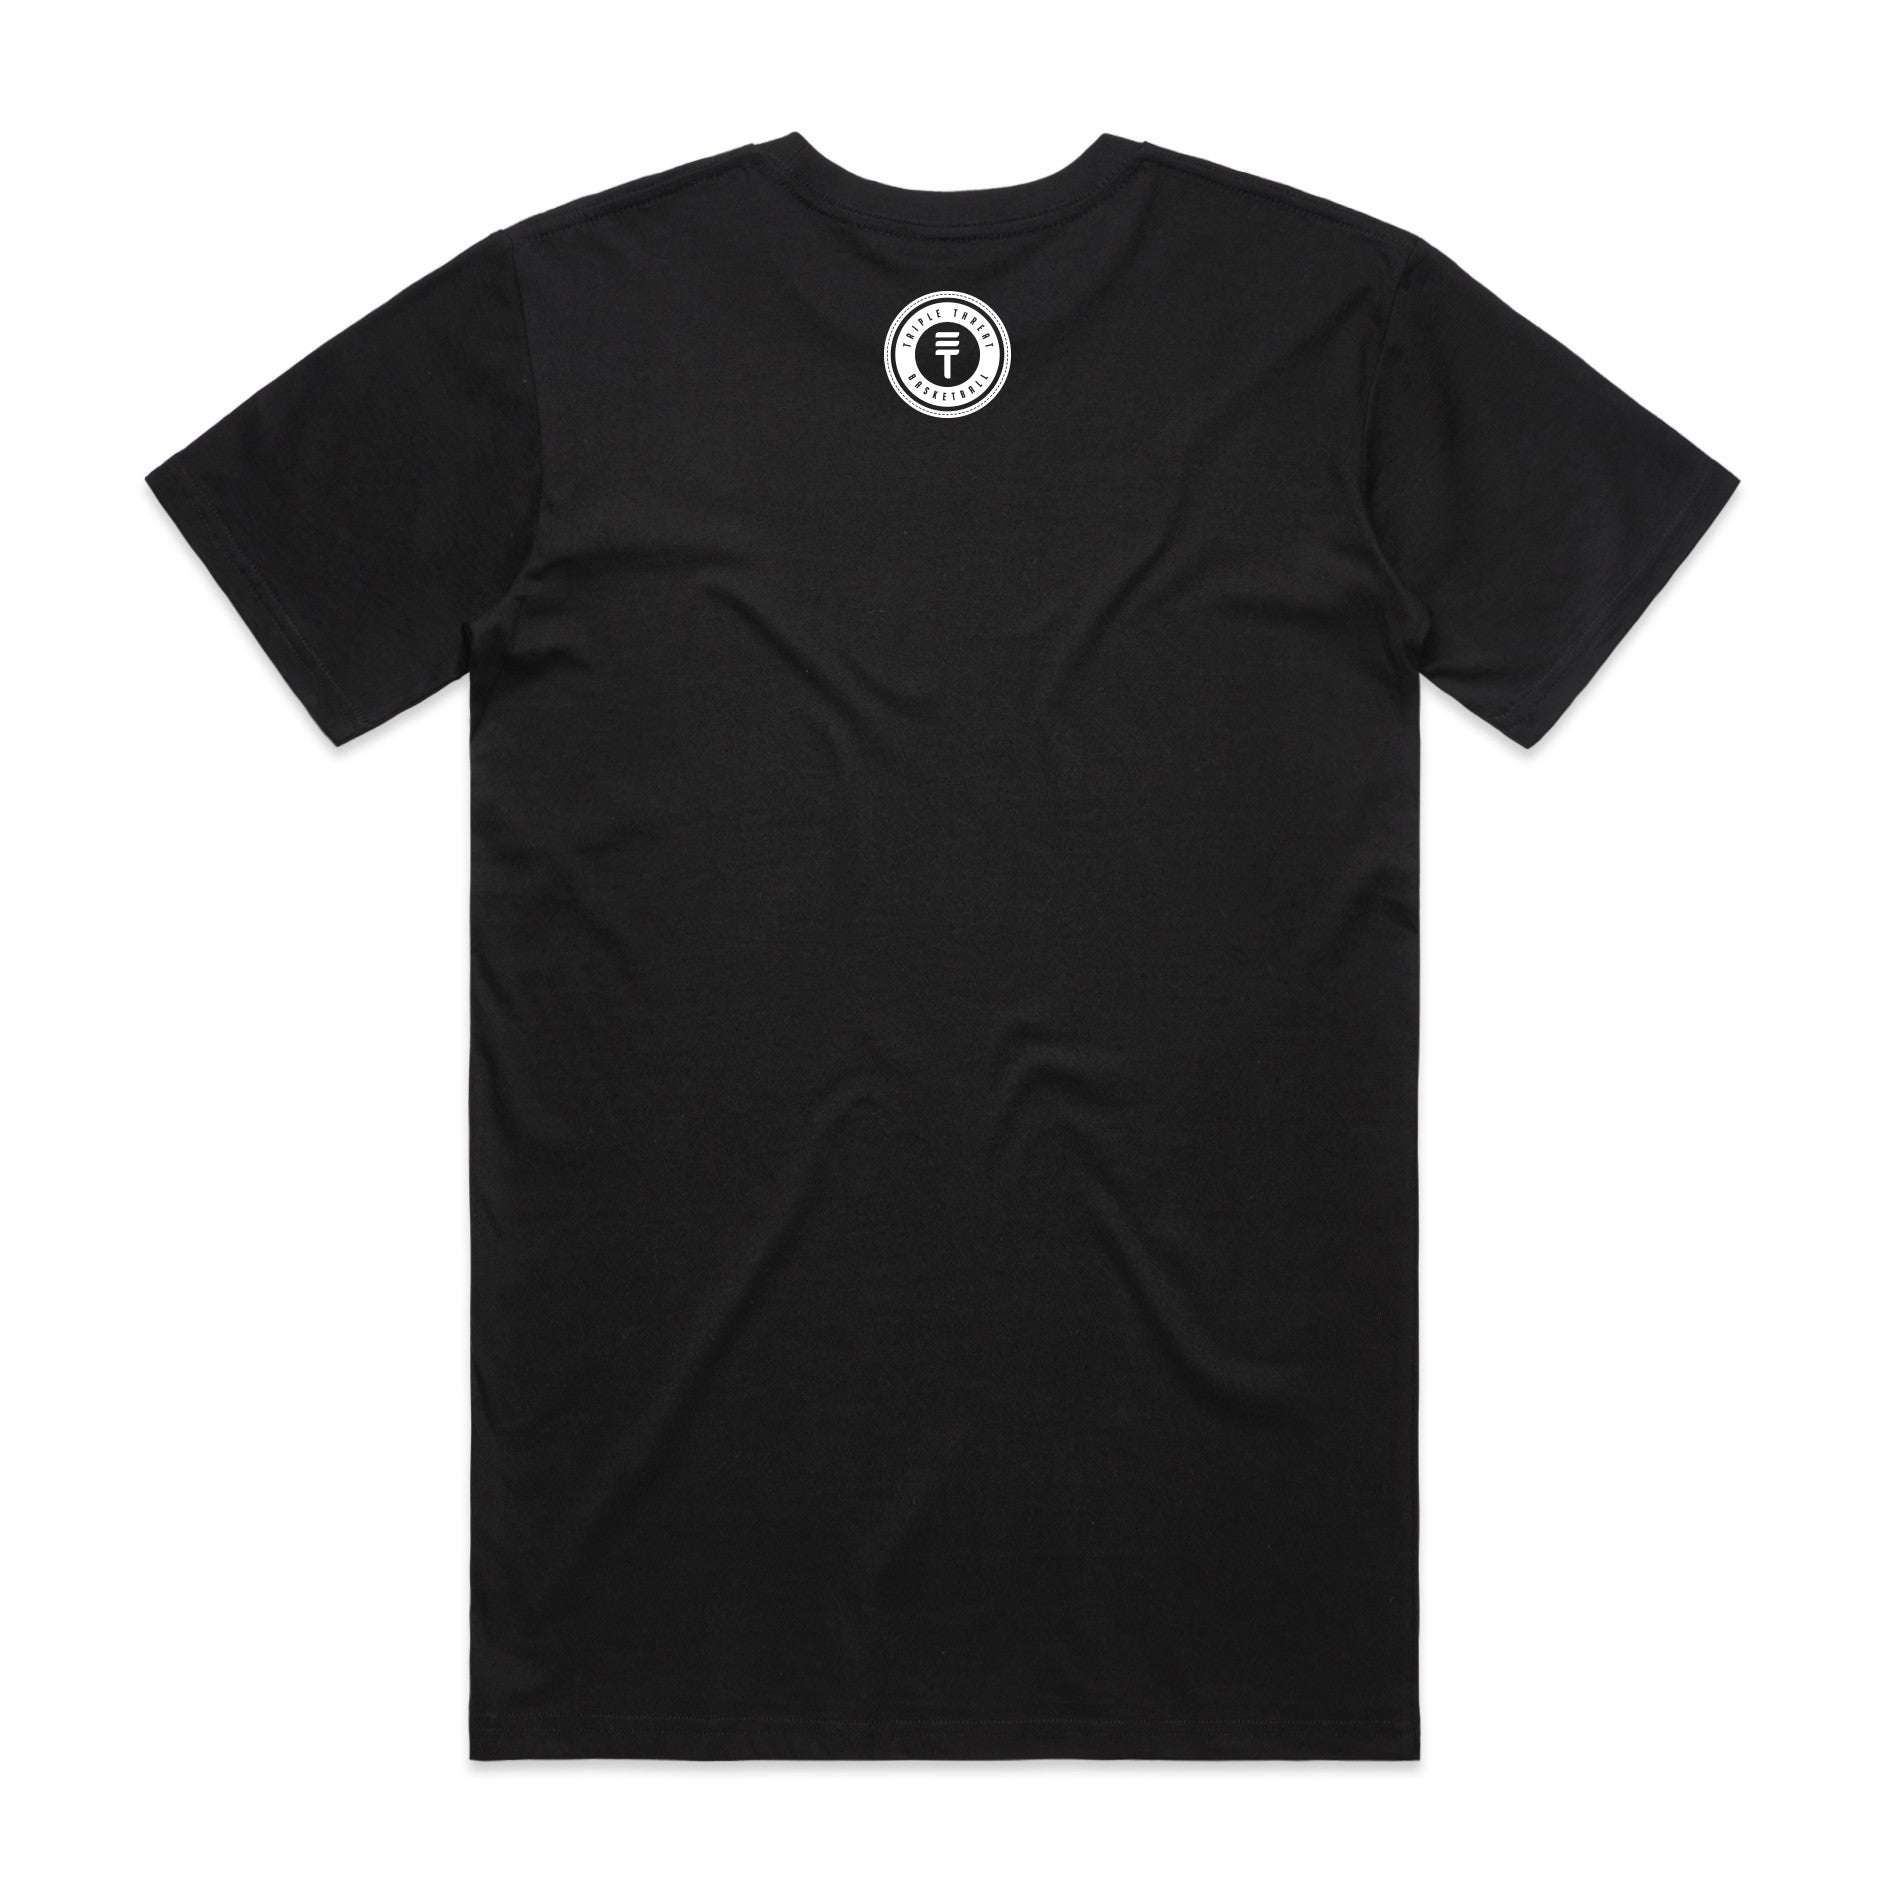 ROUND LOGO T-SHIRT - BLACK